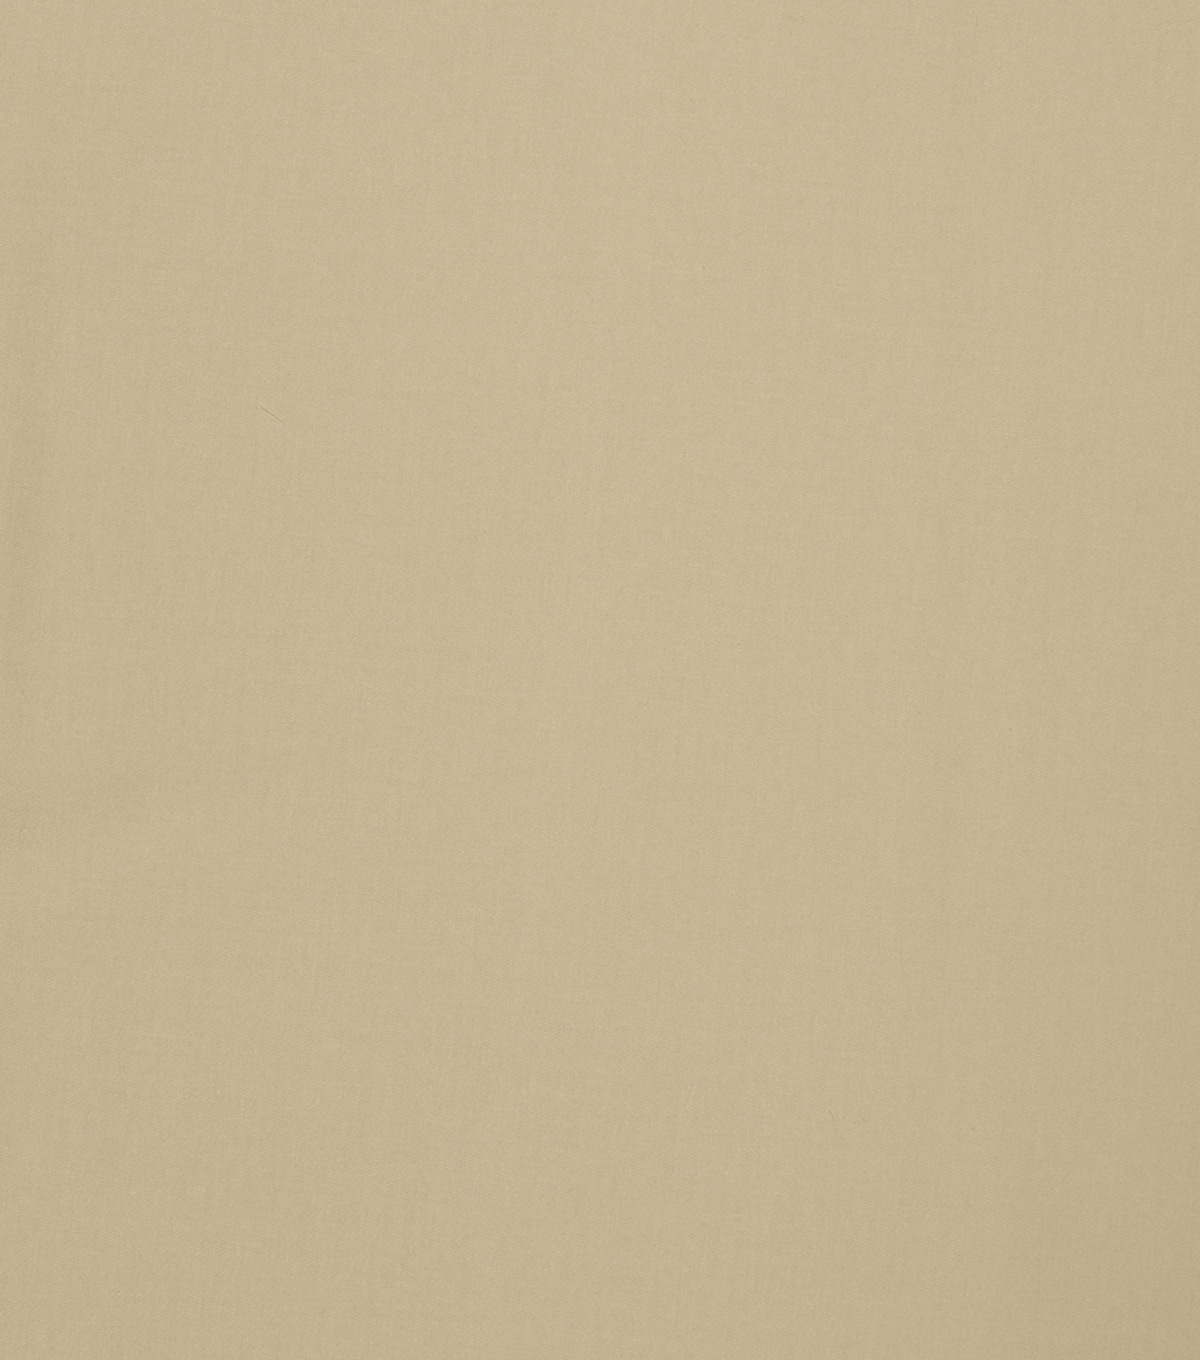 Home Decor 8x8 Fabric Swatch-Eaton Square Bandora Khaki